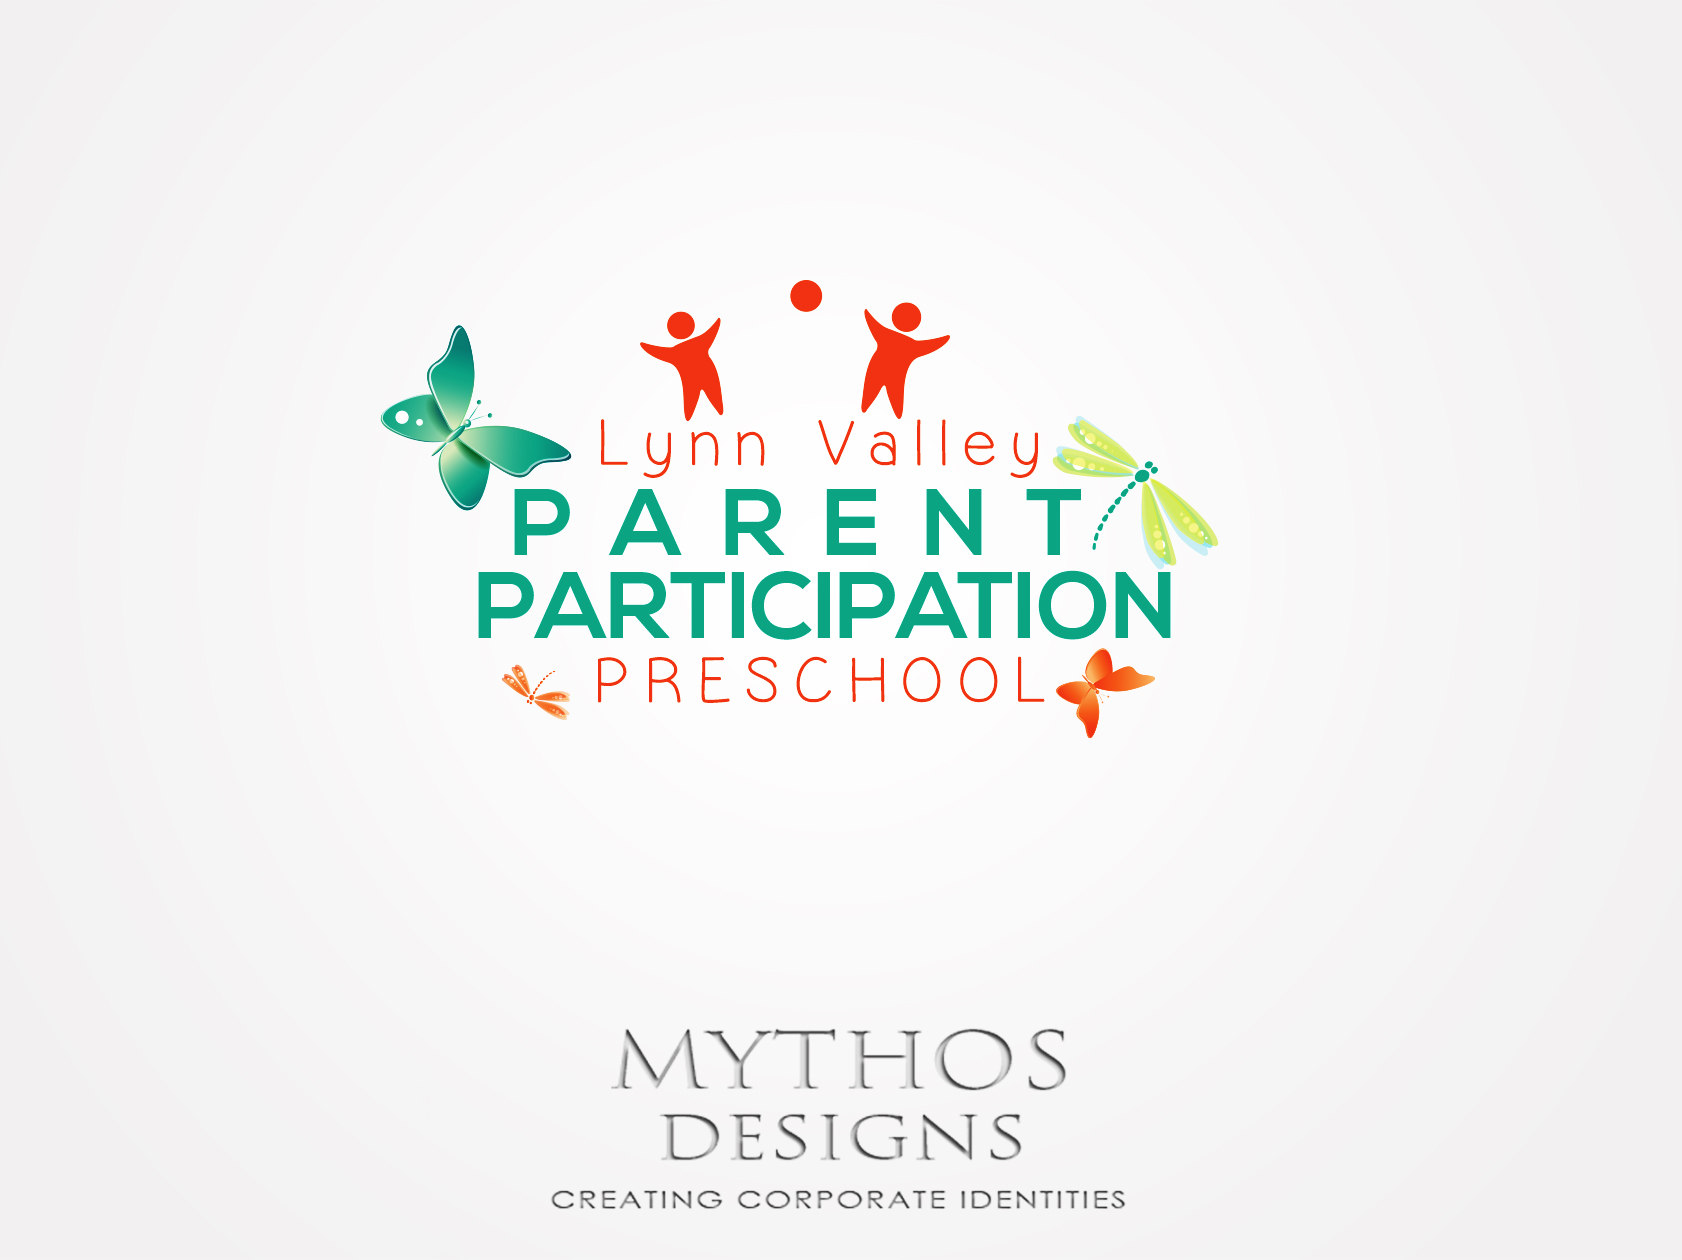 Logo Design by Mythos Designs - Entry No. 42 in the Logo Design Contest New Logo Design for Lynn Valley Parent Participation Preschool.